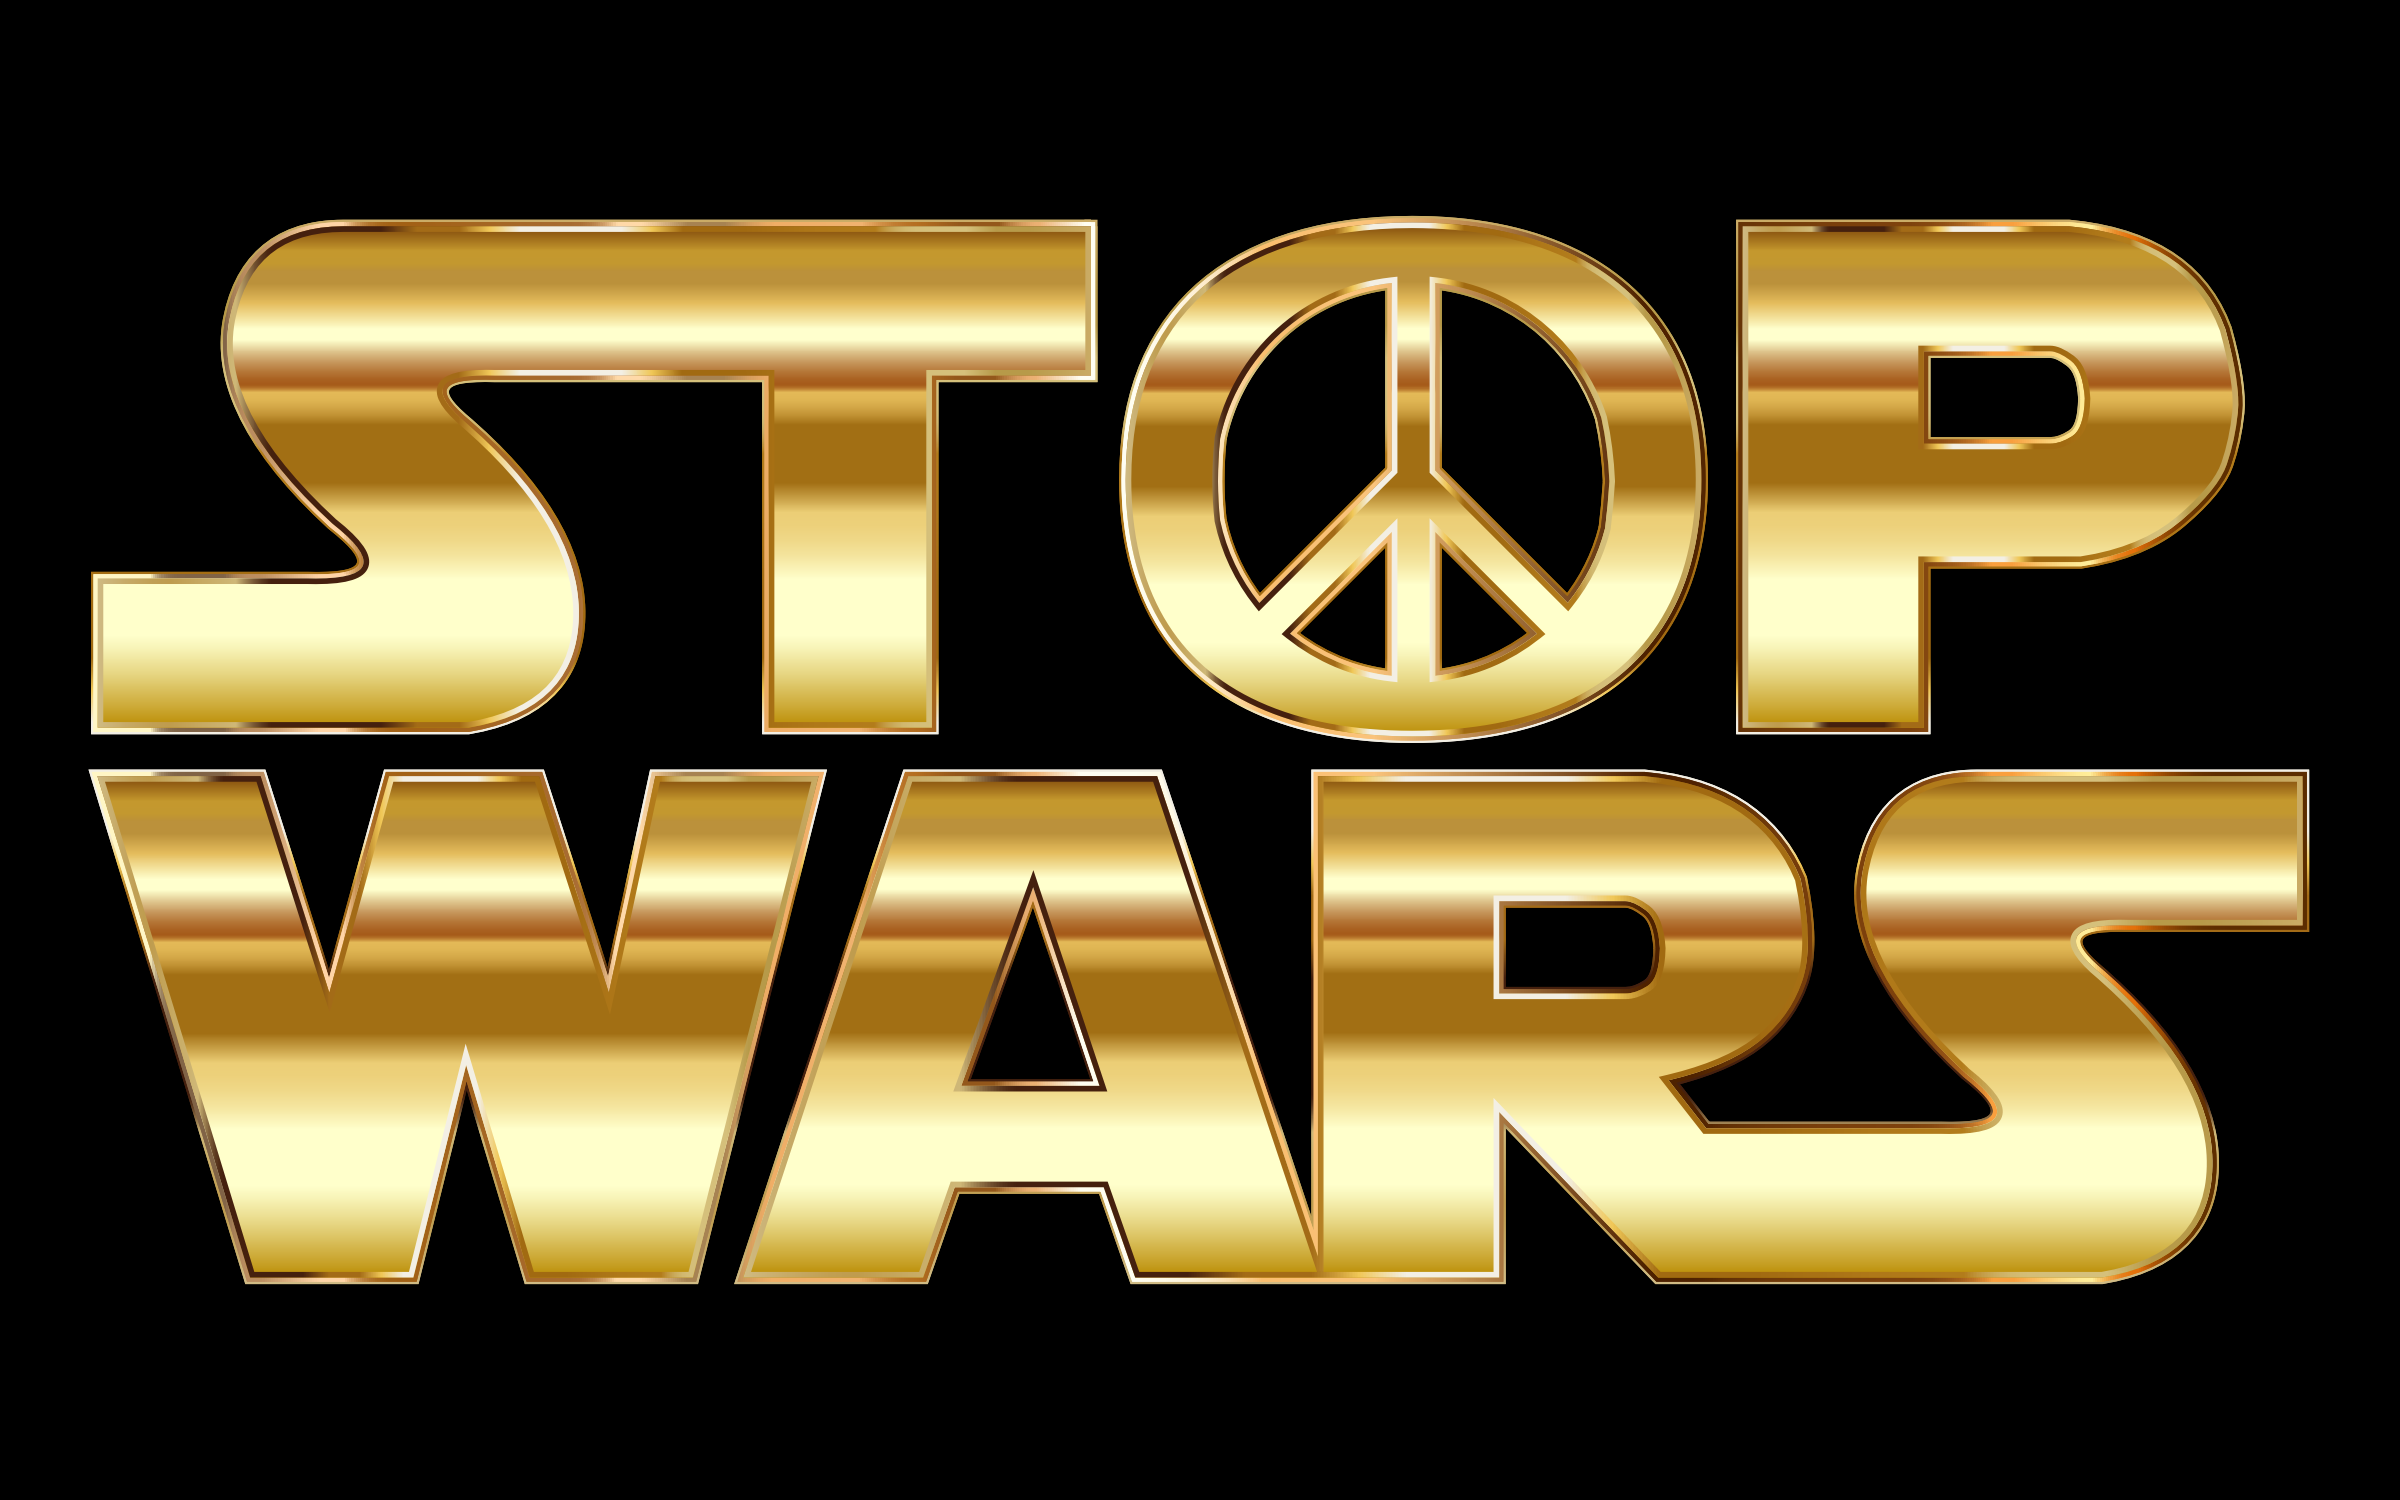 Stop Wars Gold by GDJ